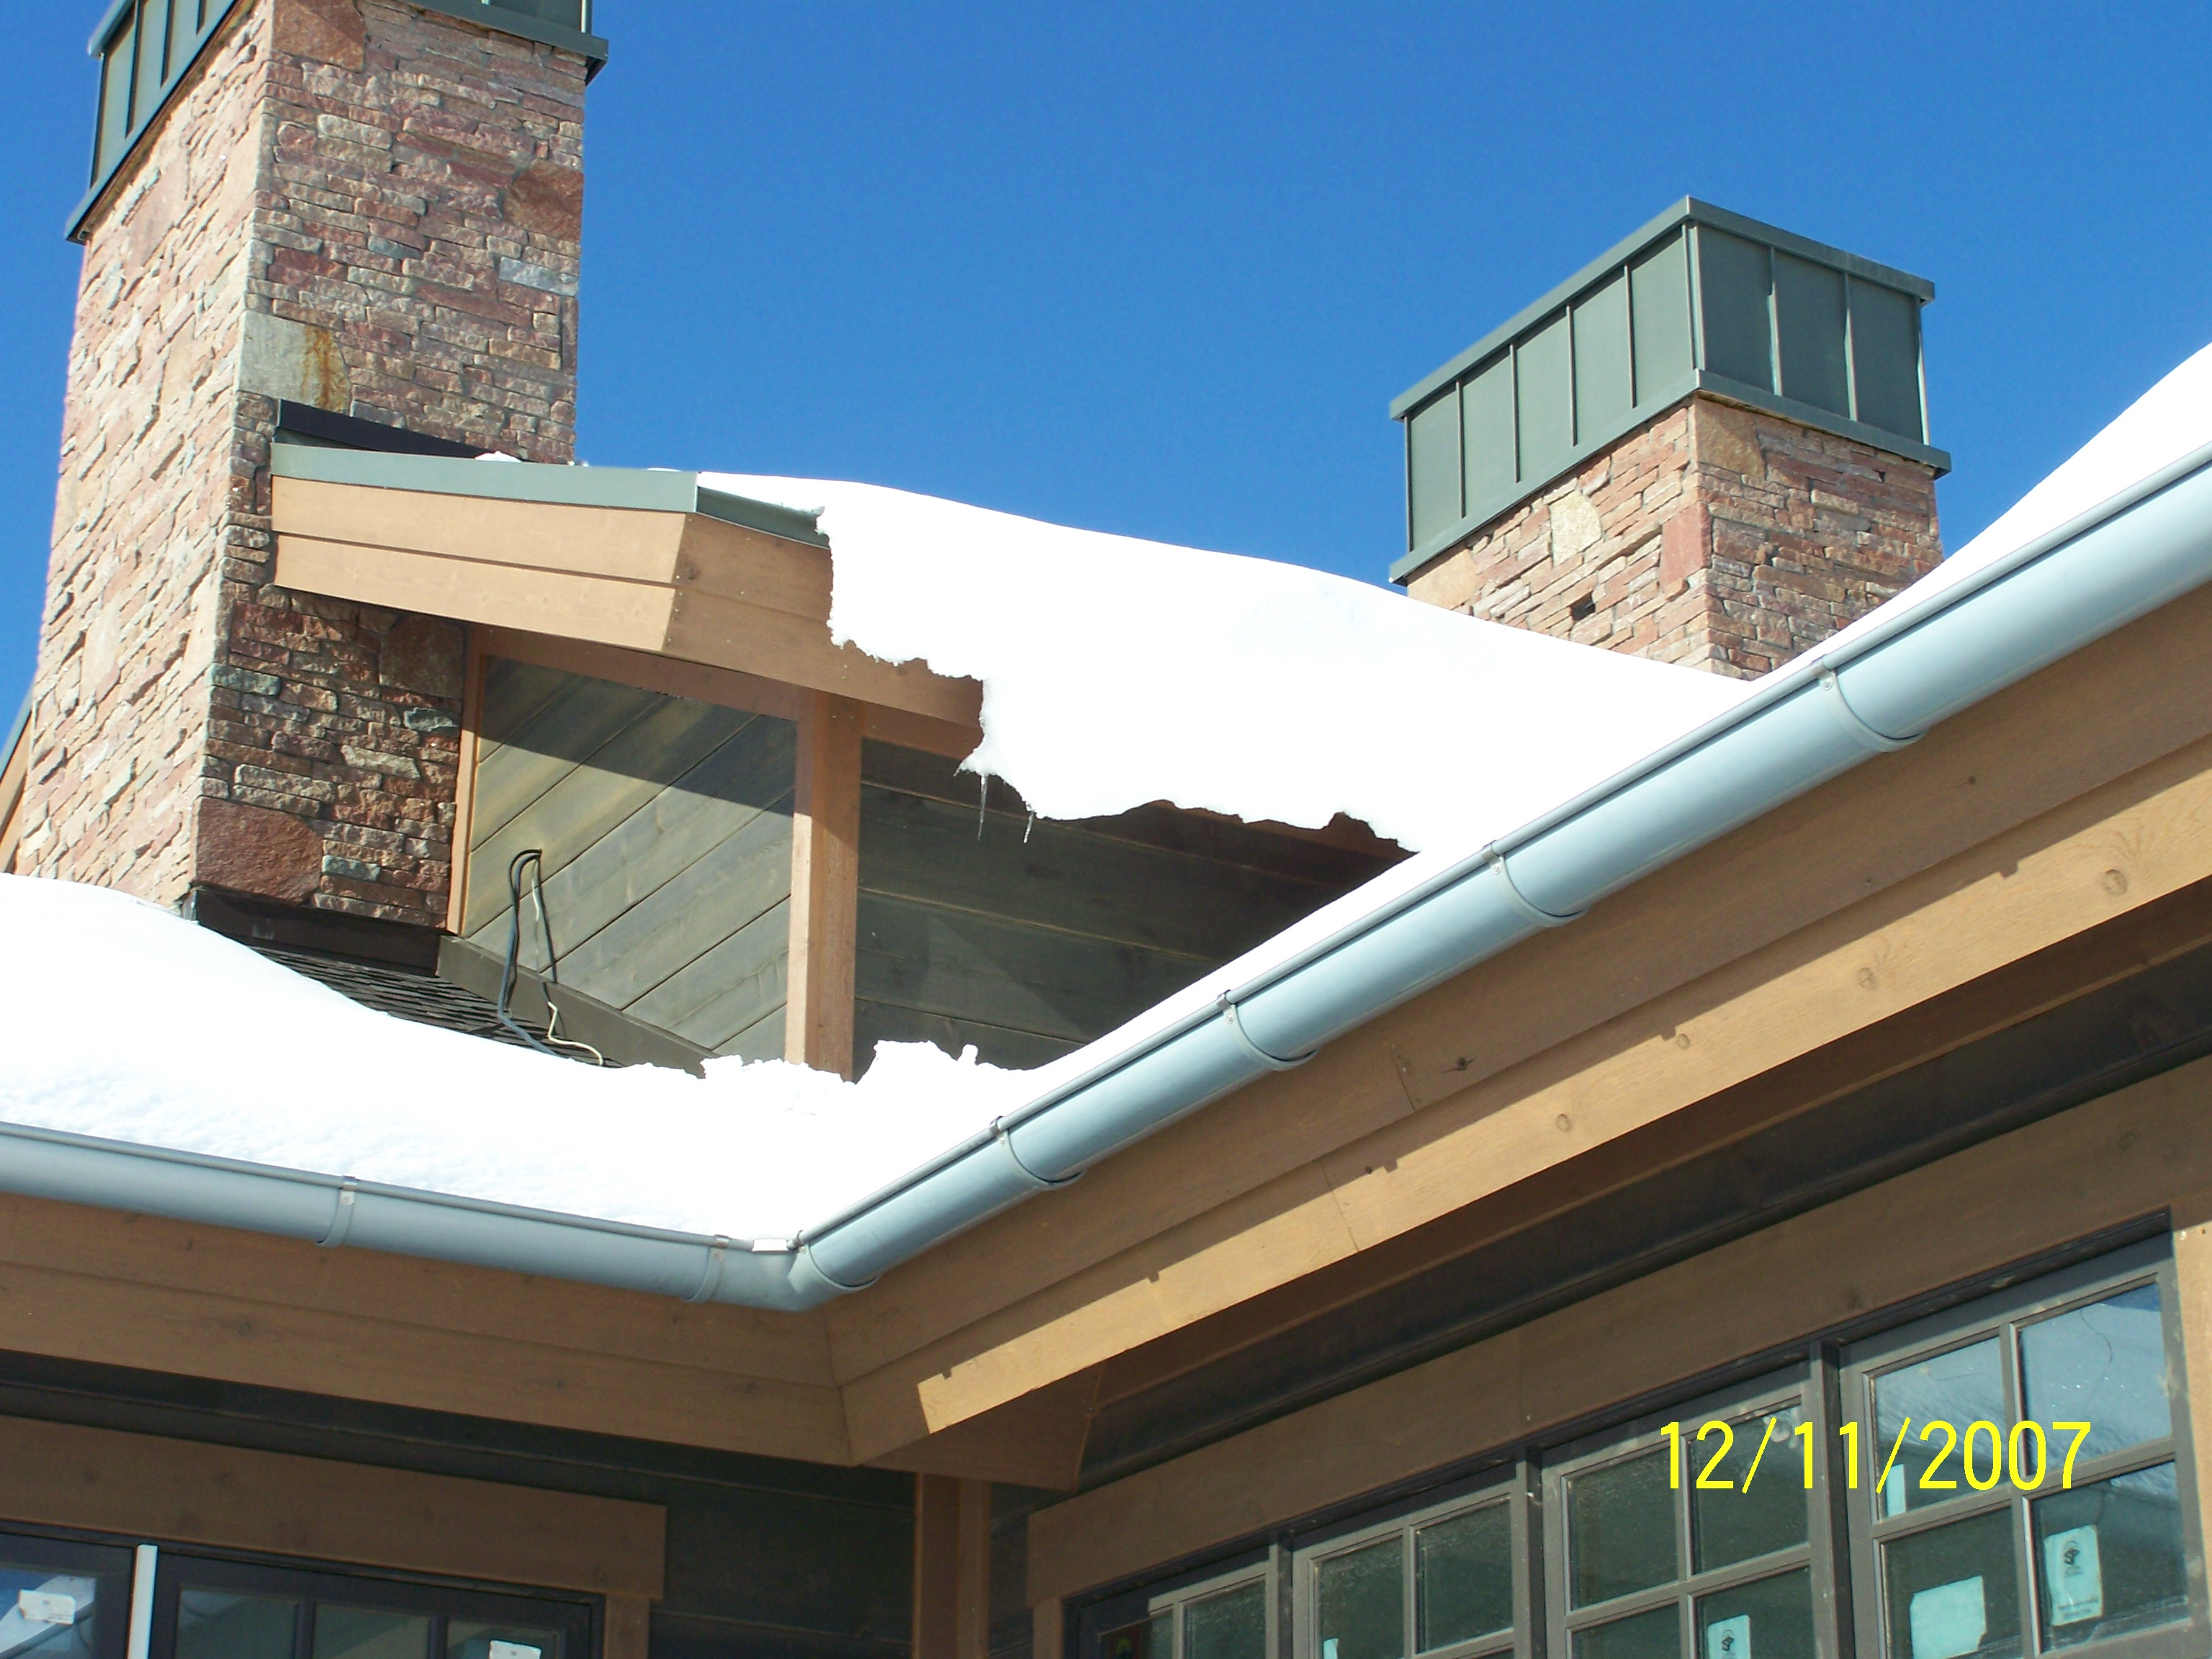 European Half Round Gutter Fine Metal Roof Tech